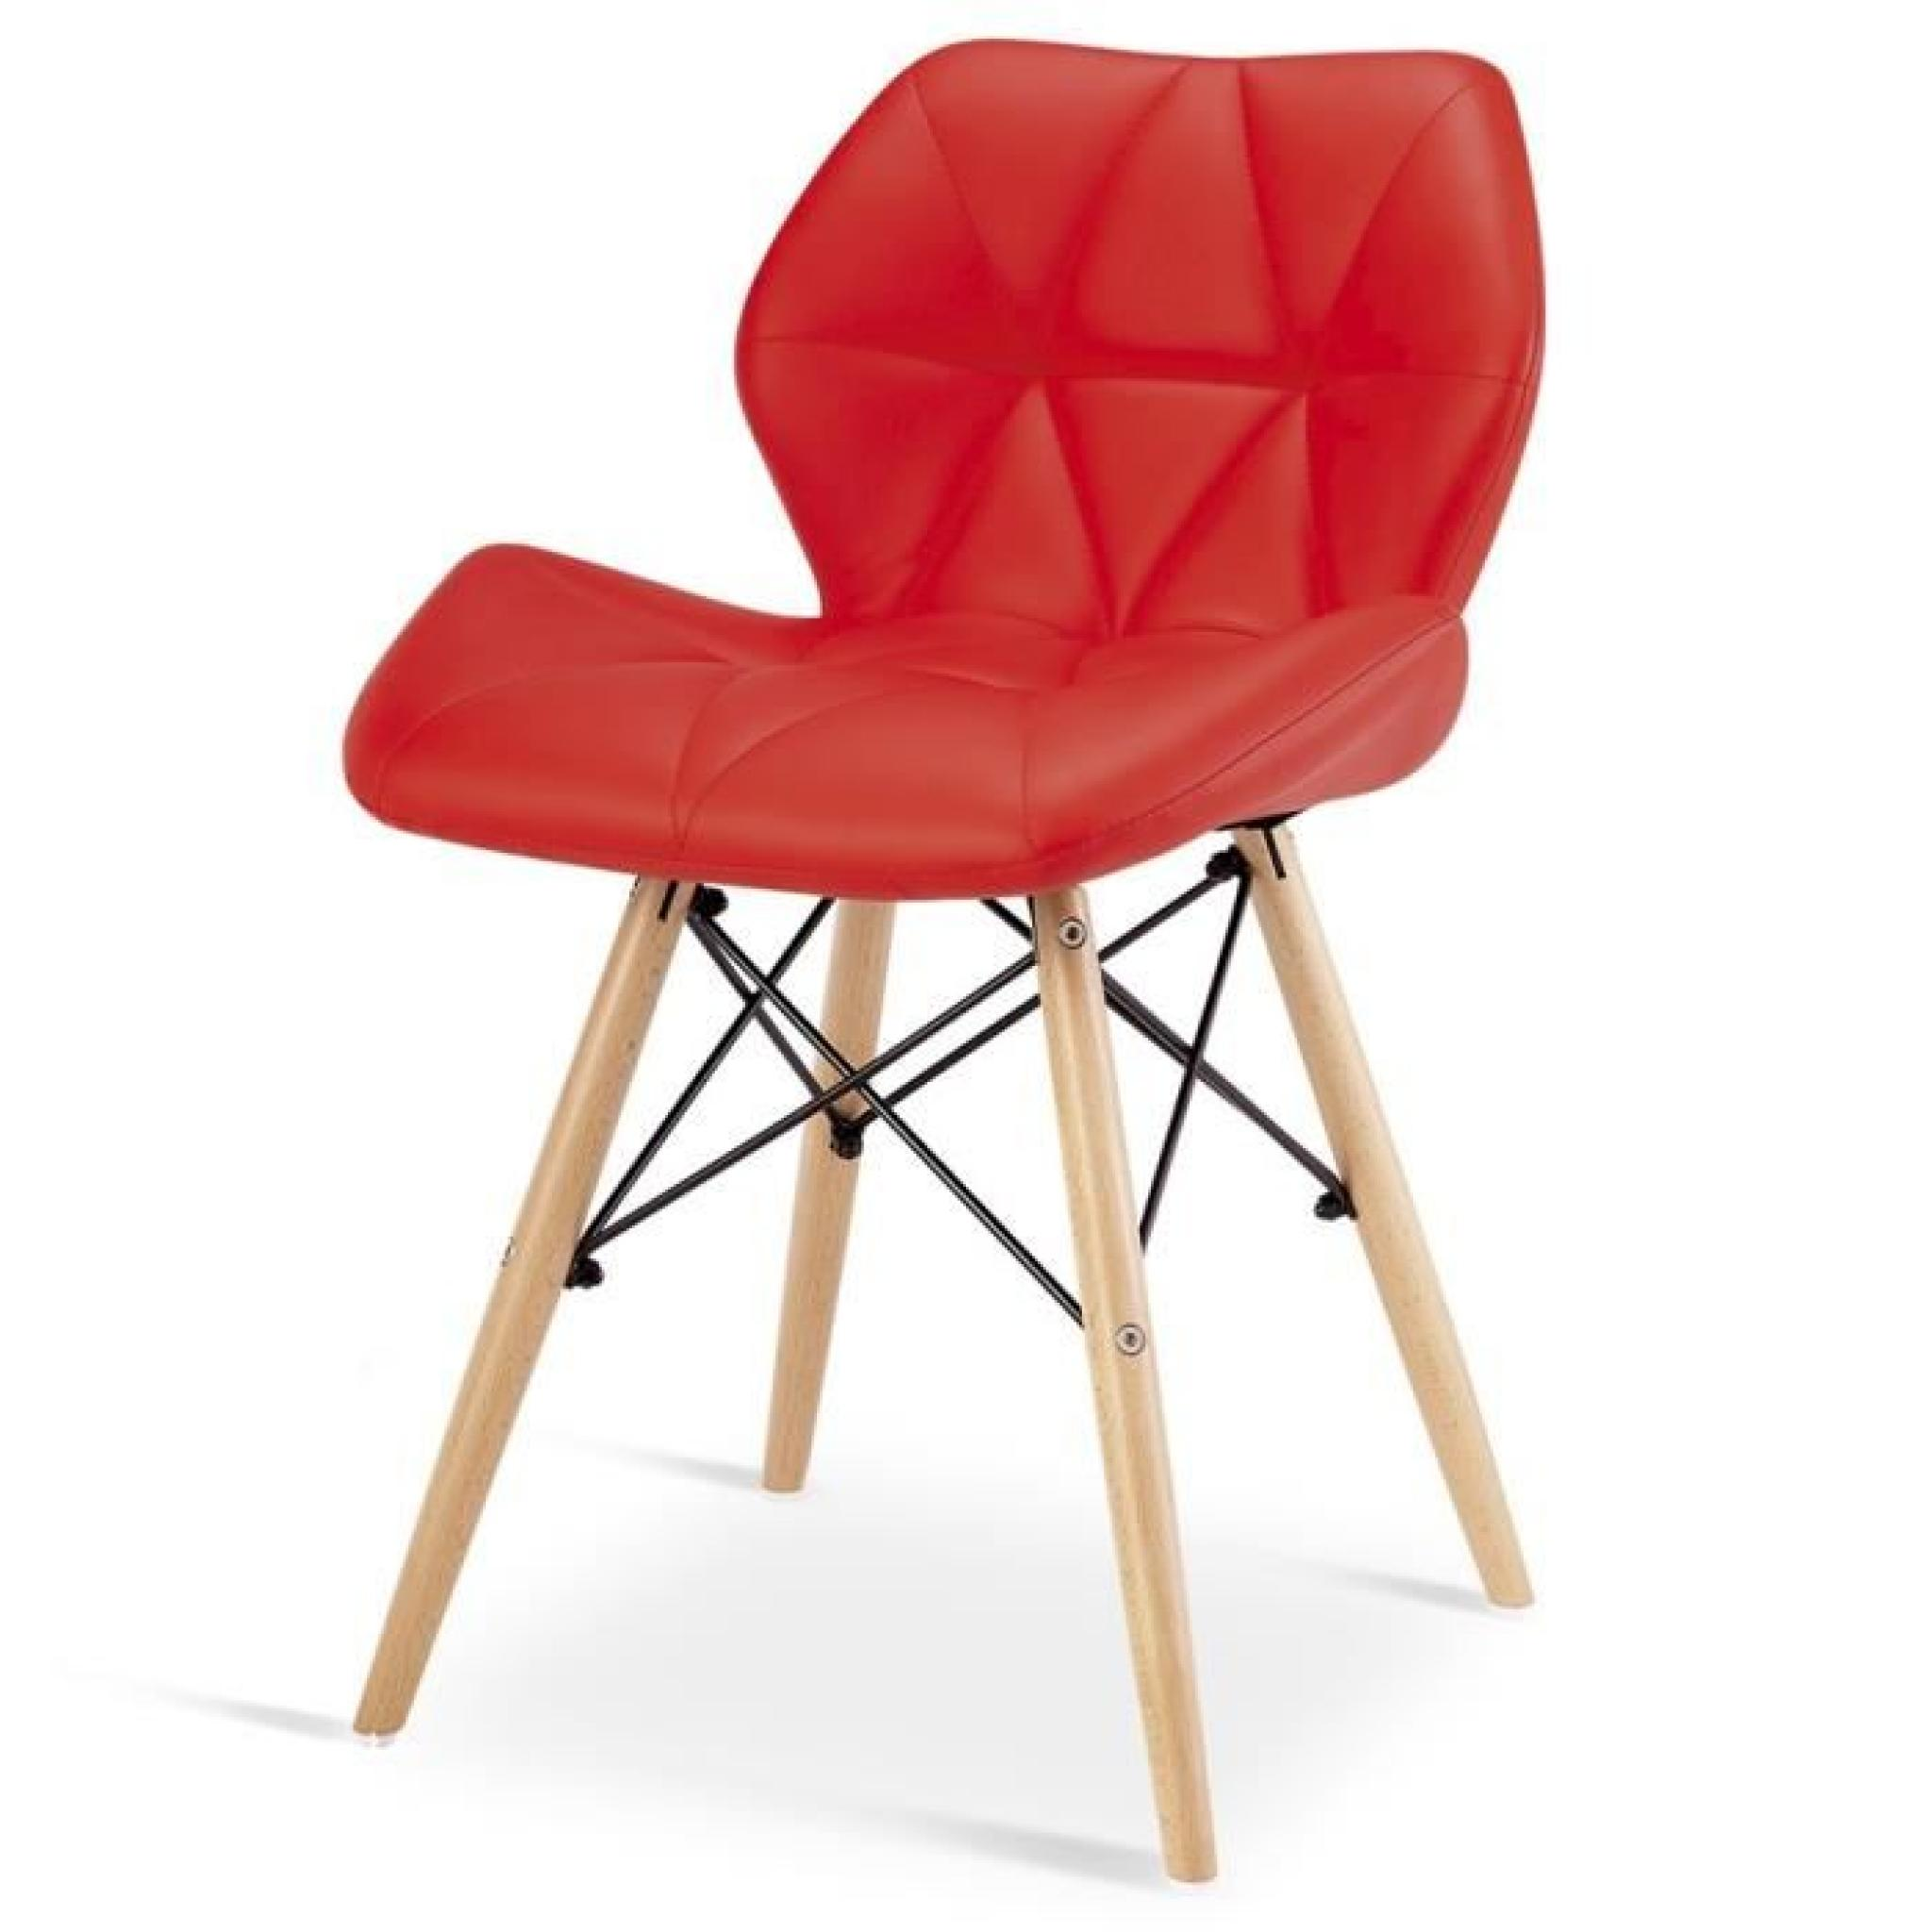 Chaise design ophir rouge pied en bois achat vente for Chaise en bois design